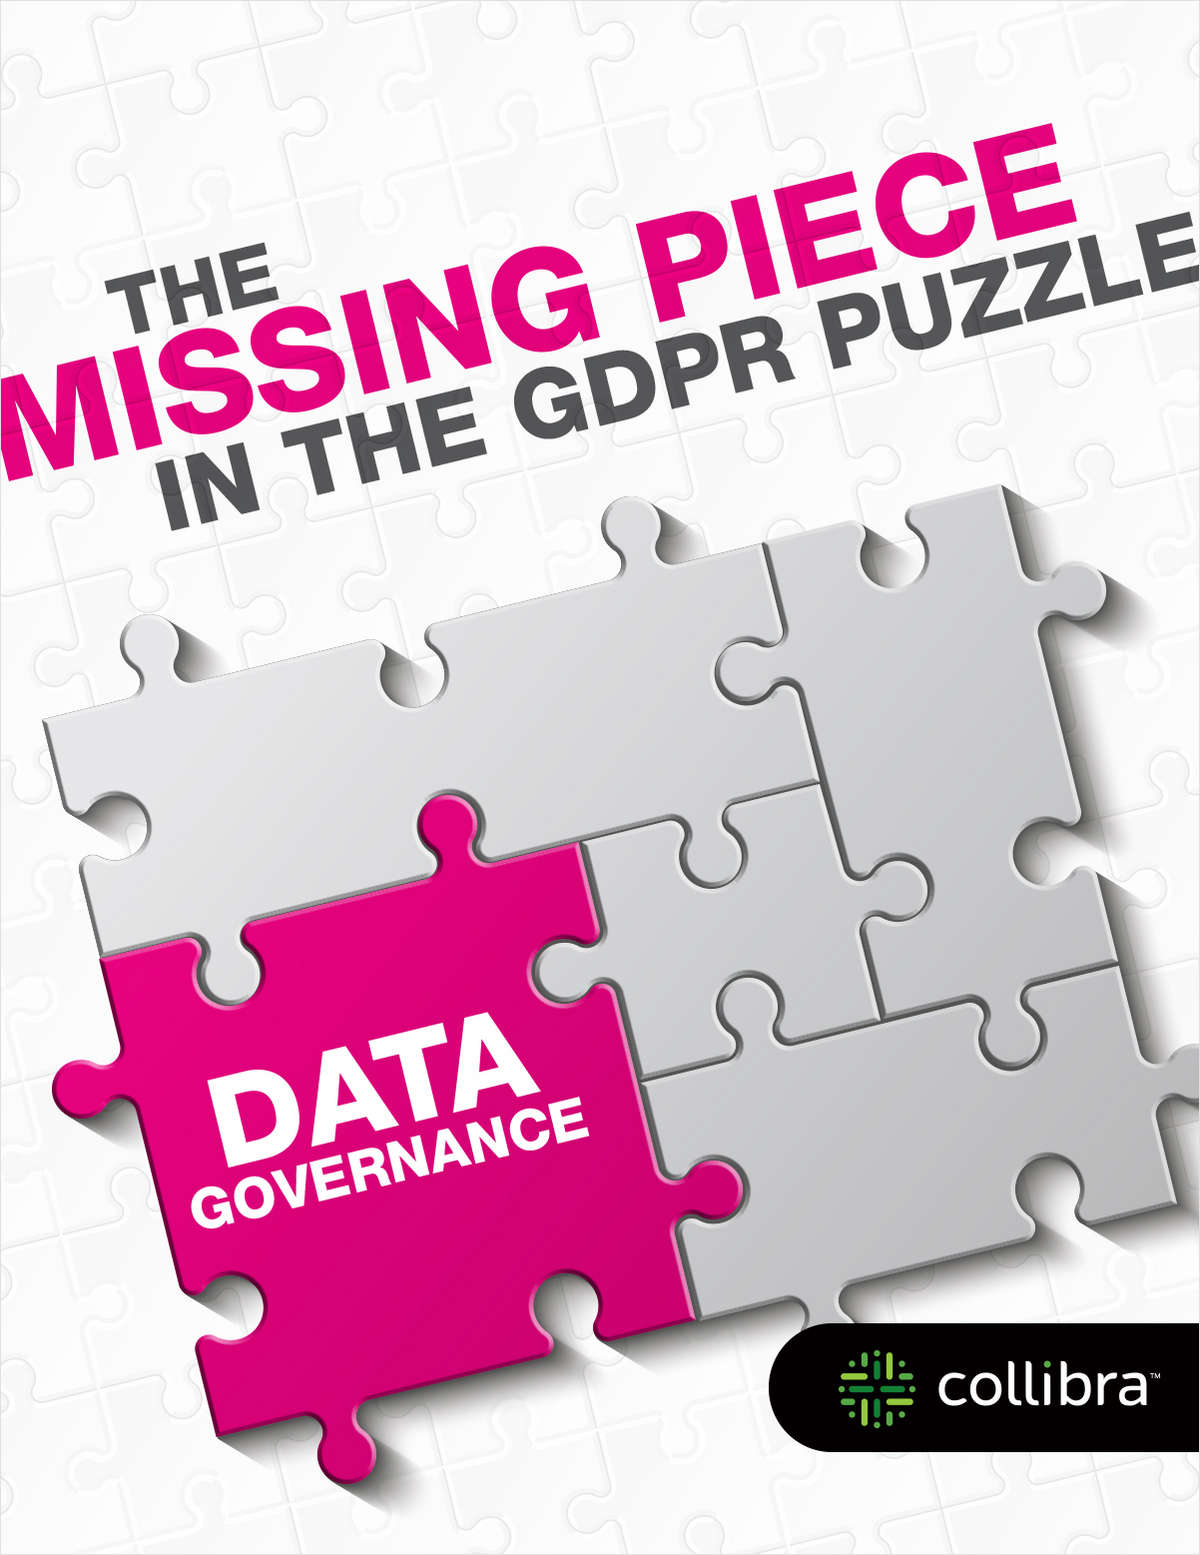 The Missing Piece in the GDPR Puzzle